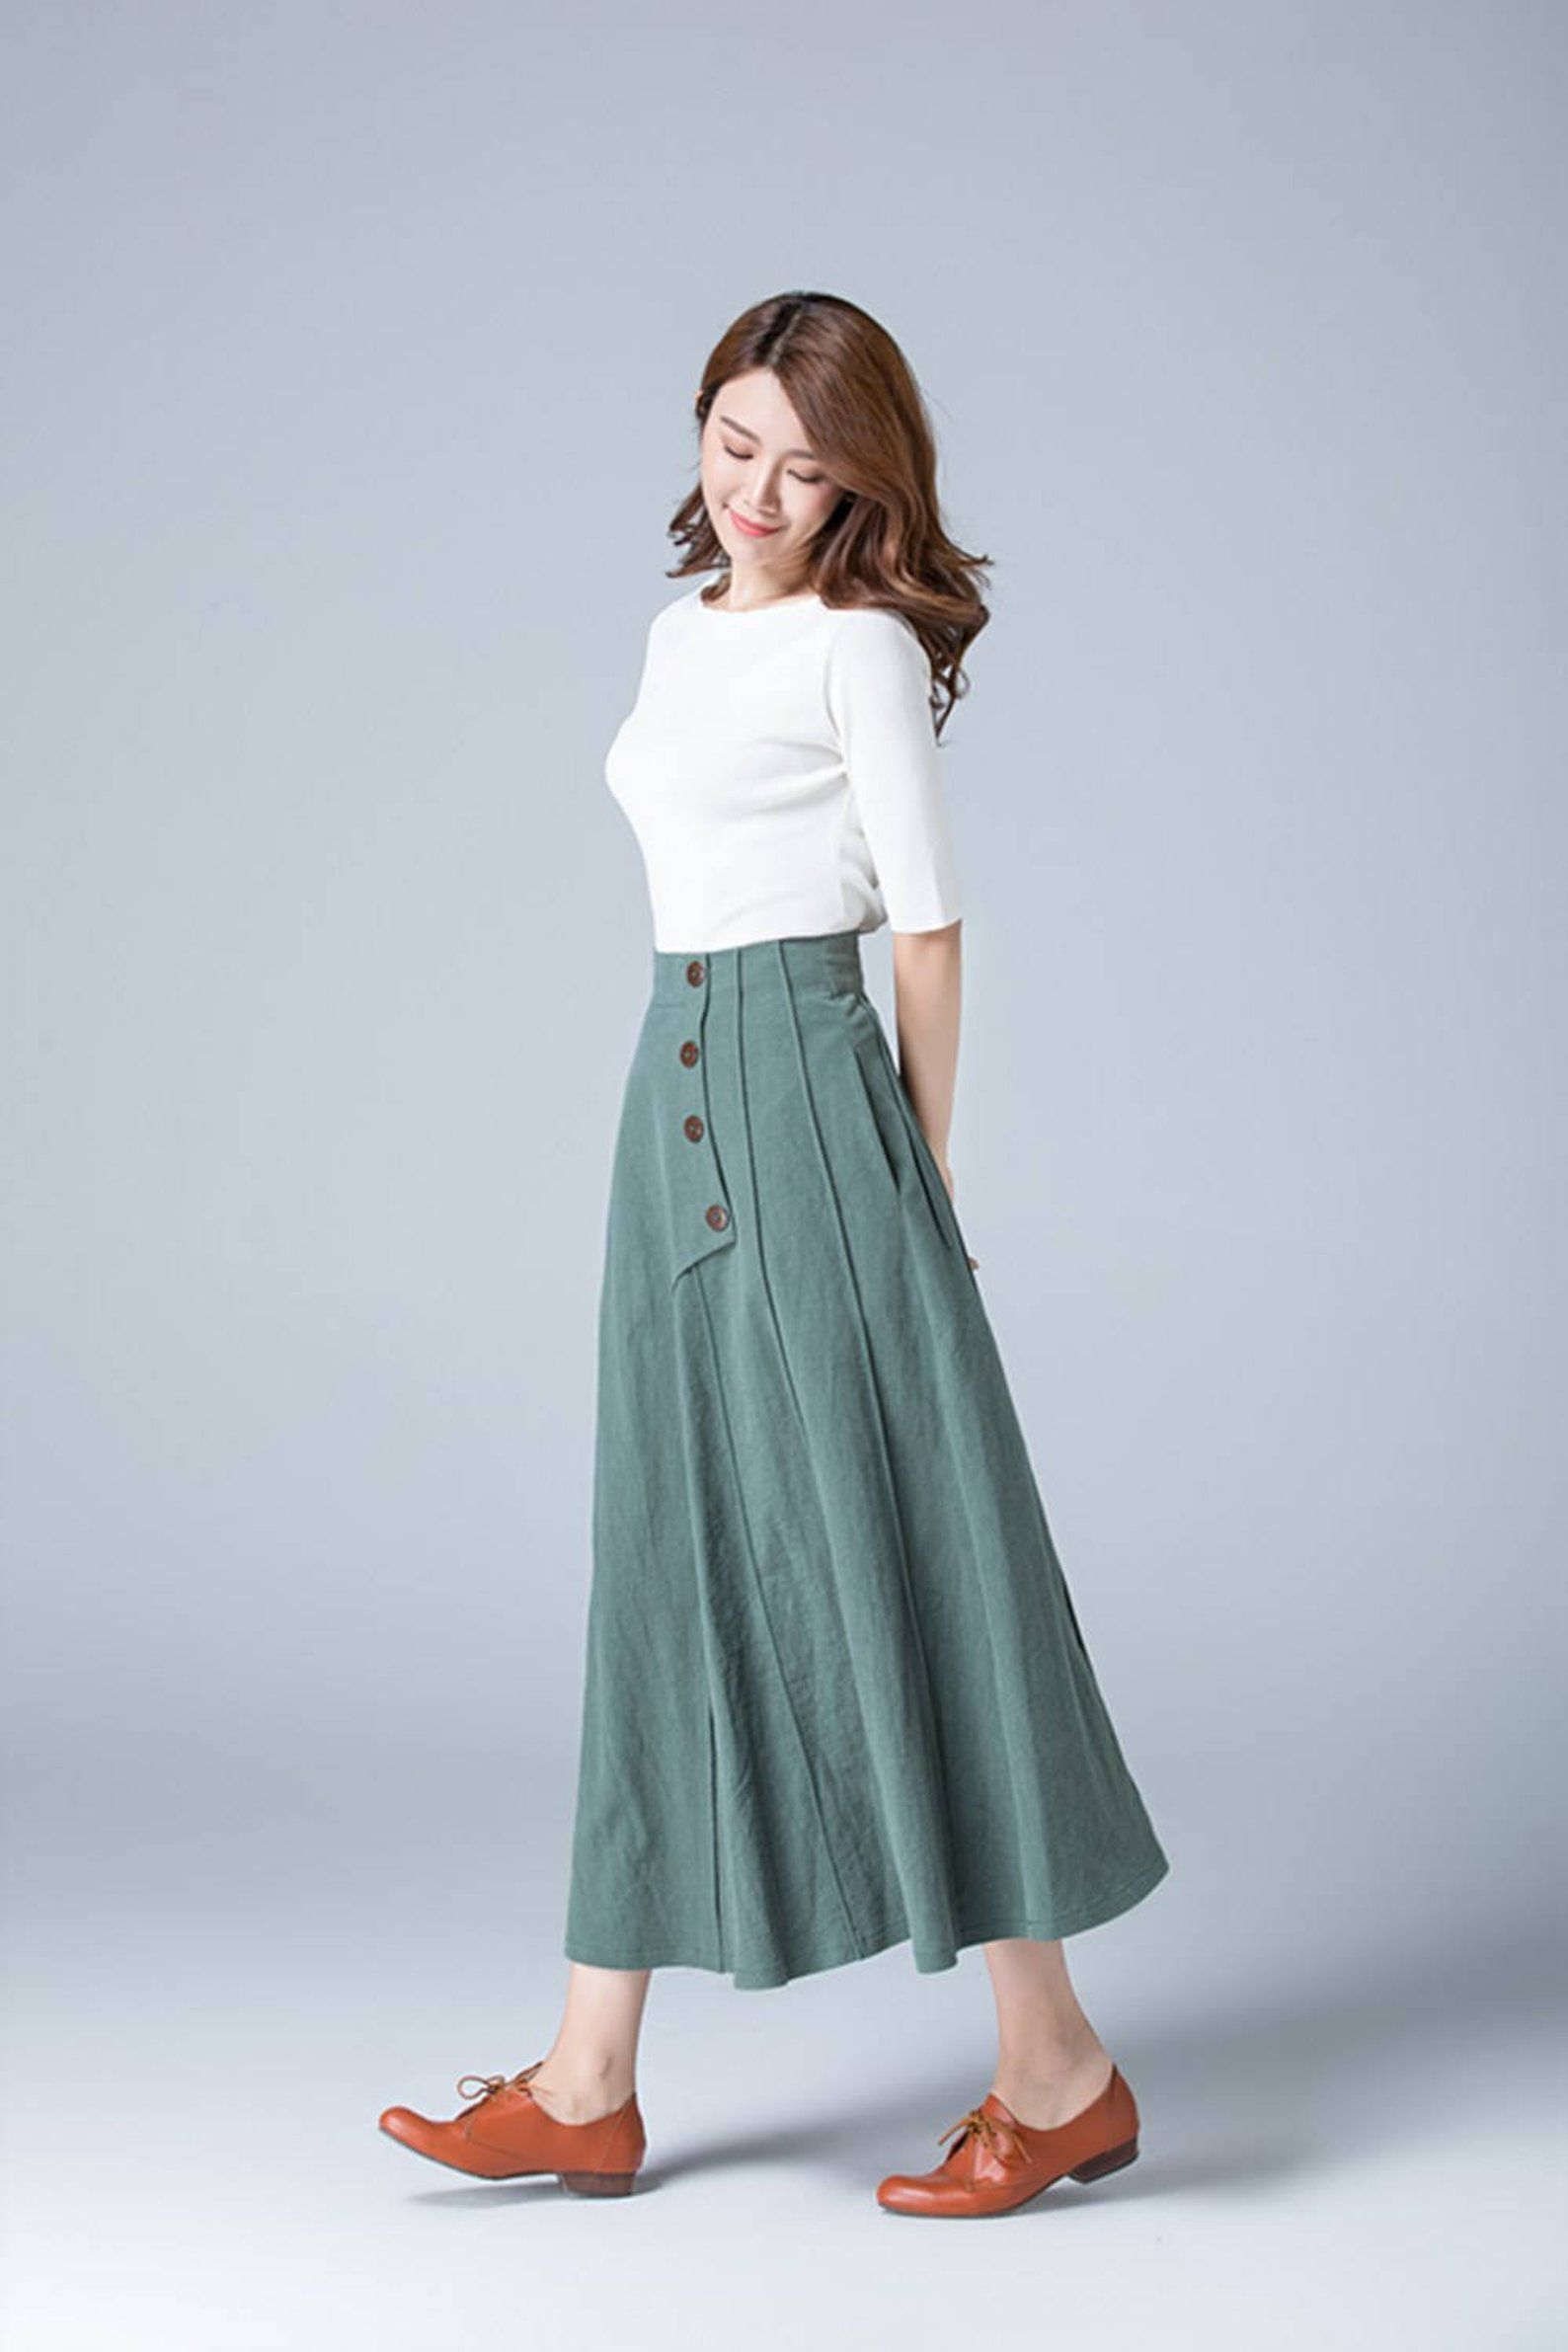 Green skirt, linen skirt, full skirt, casual skirt, button skirt, skirt with pockets, womens skirt, long skirt, plus size skirt 1775# #casualskirts